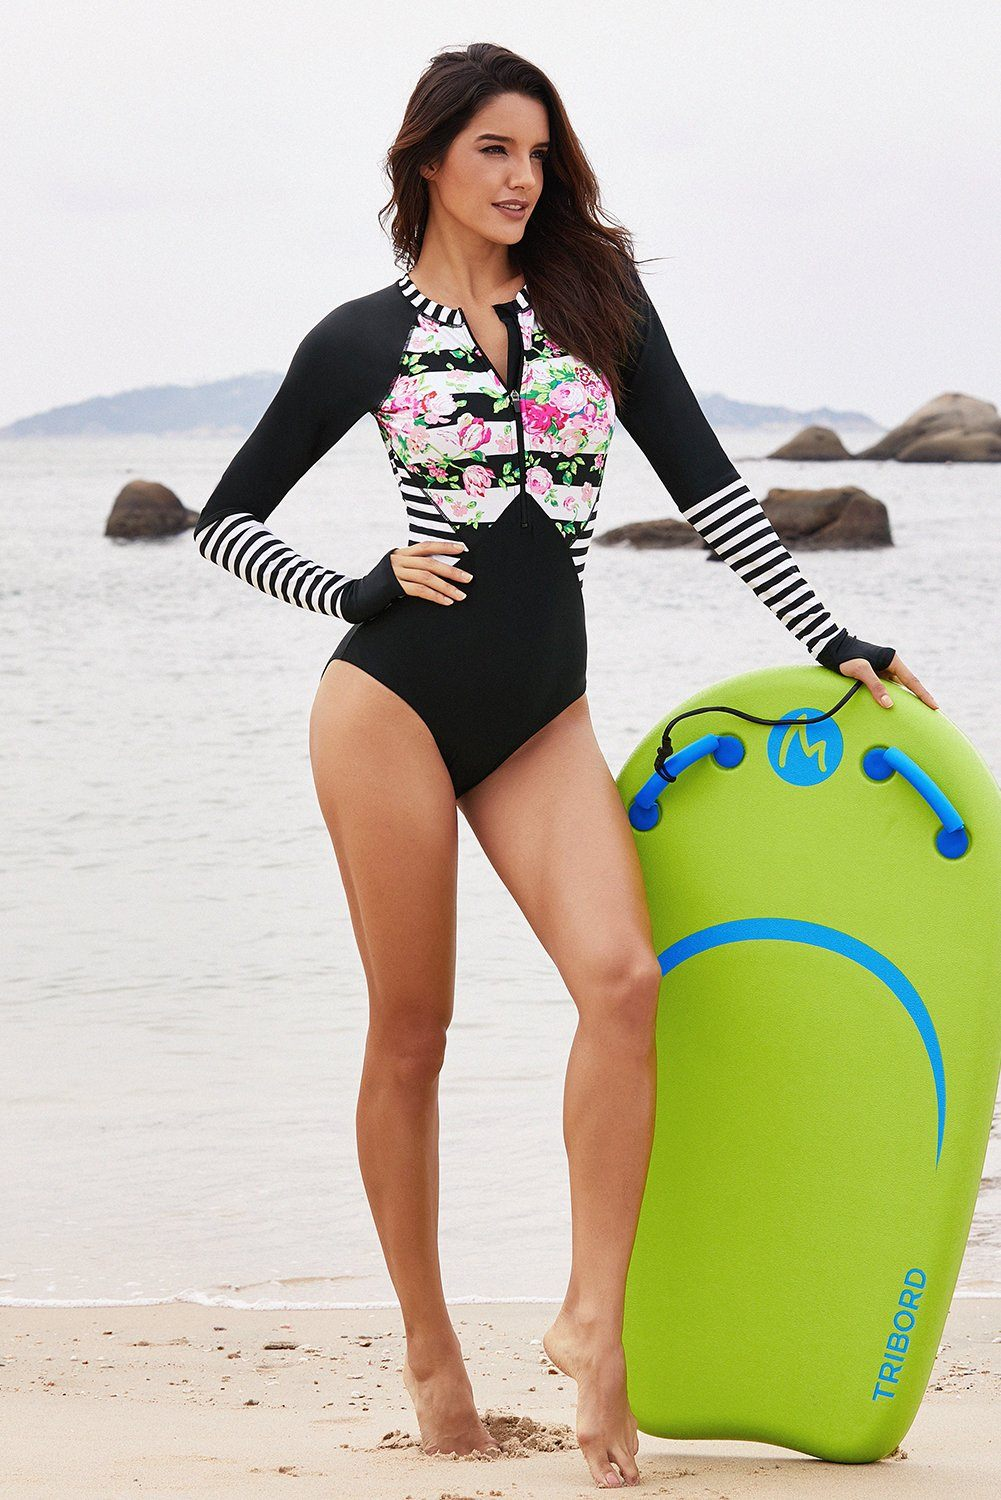 Women Font Zipper Stripes Roses Long Sleeve Rash Guard One Piece Scuba Swimsuit - KaleaBoutique.com